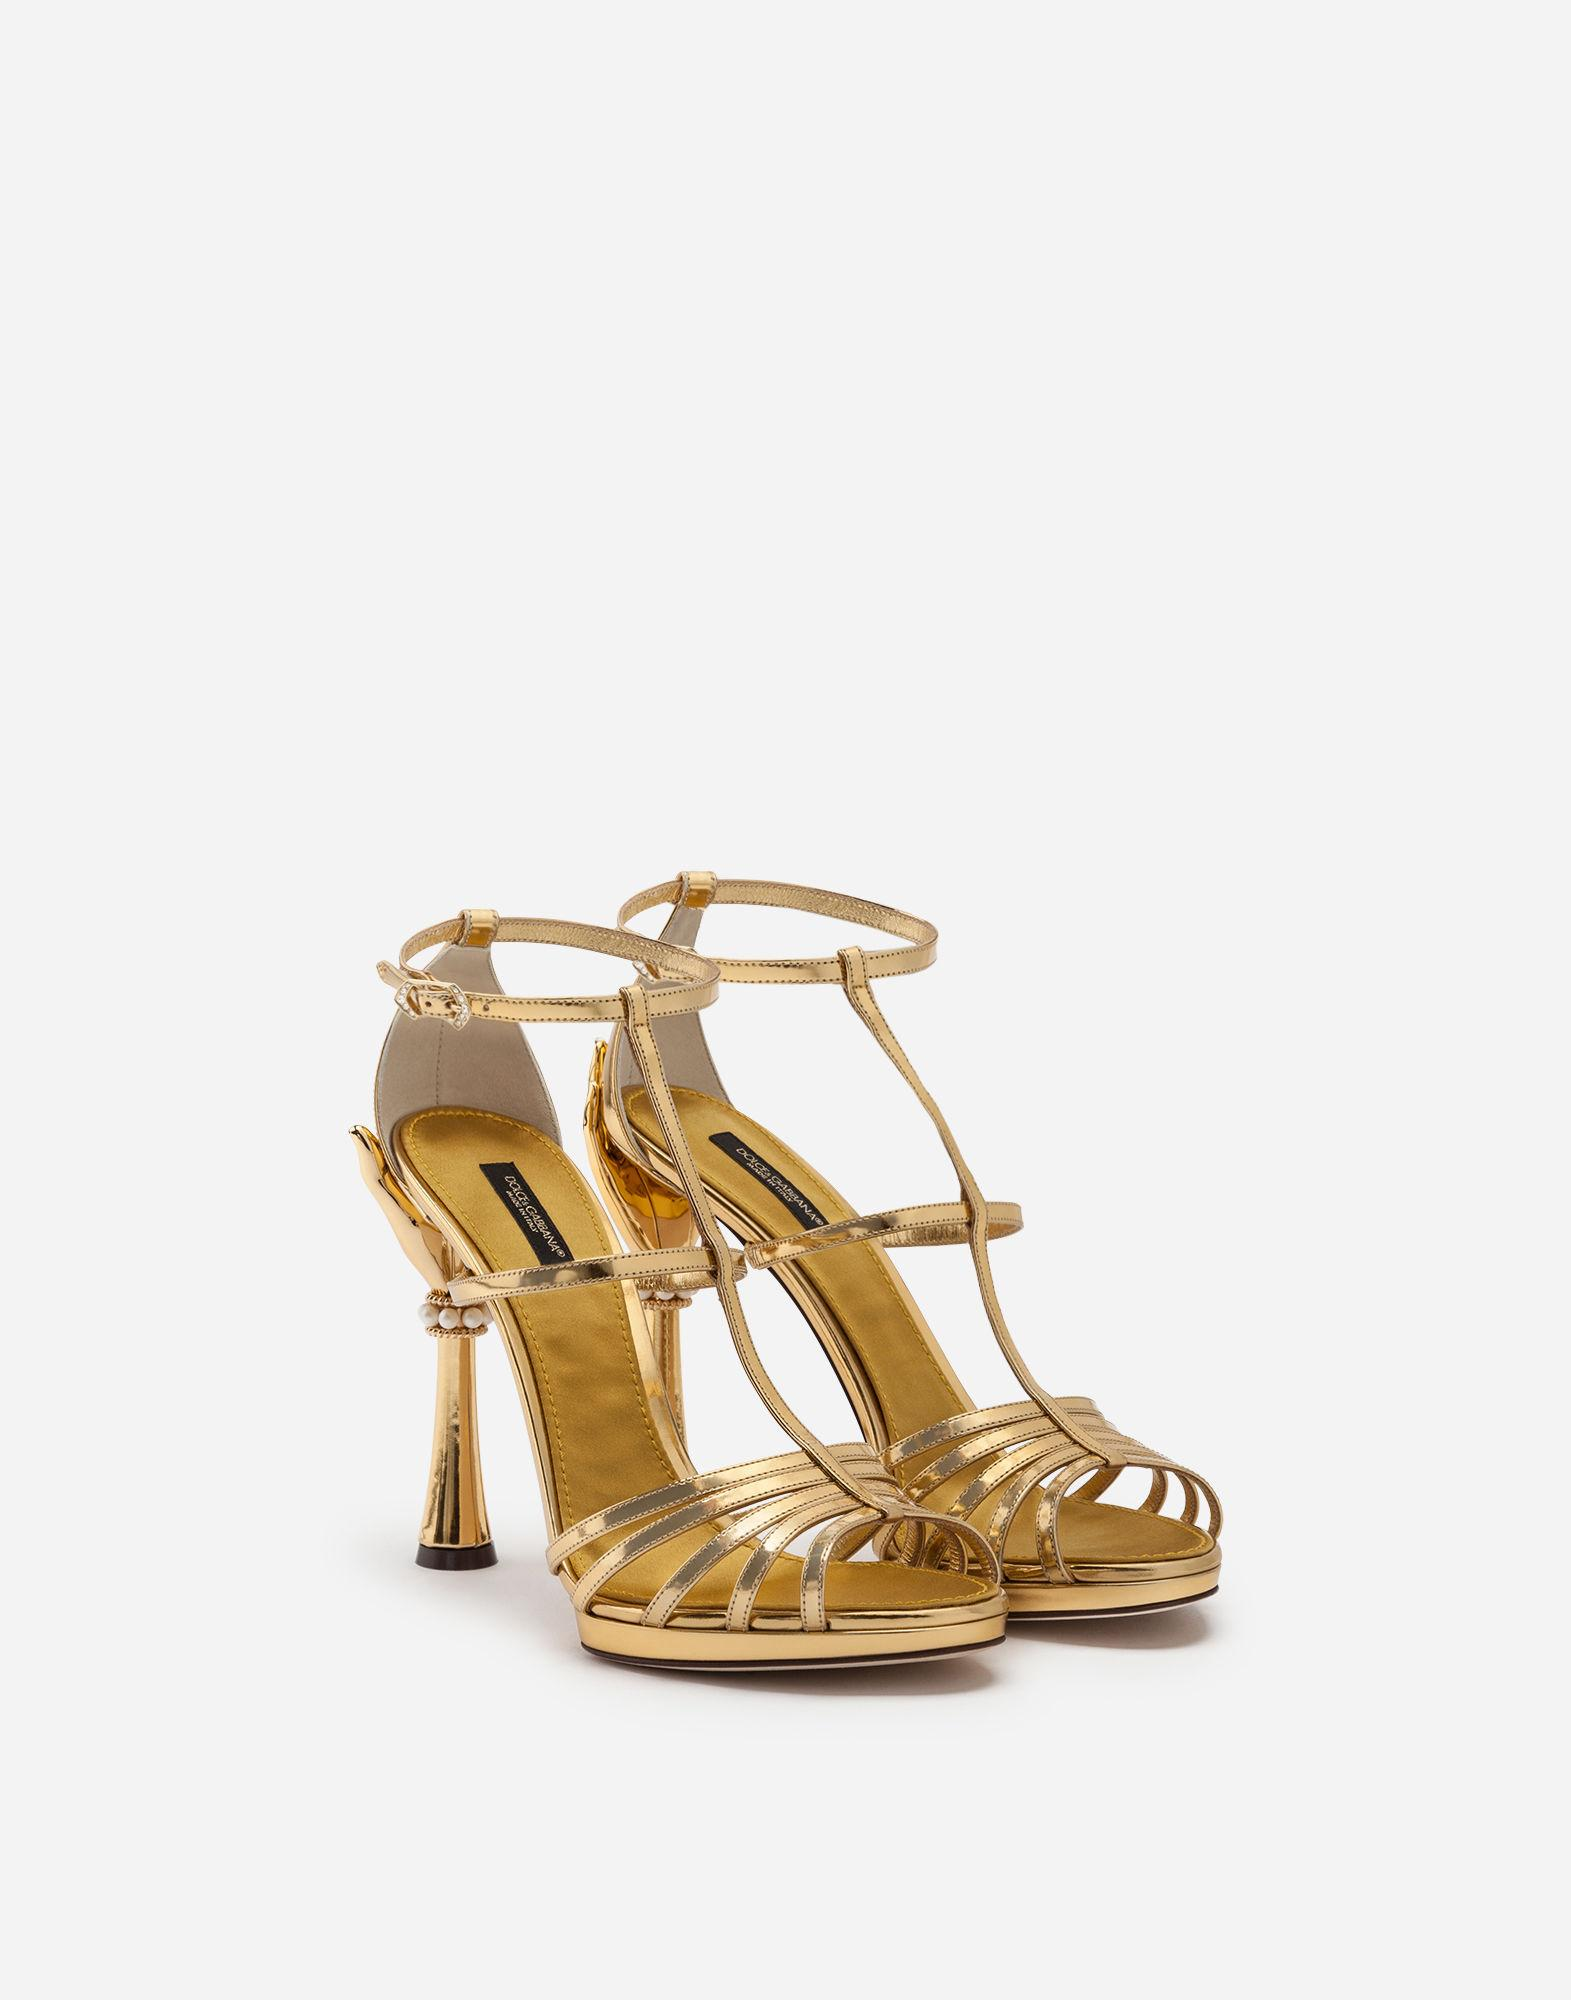 9c55399764b dolce-gabbana-GOLD-Sandal-In-Mirrored-Patent-Leather-With-Sculpted-Heel.jpeg